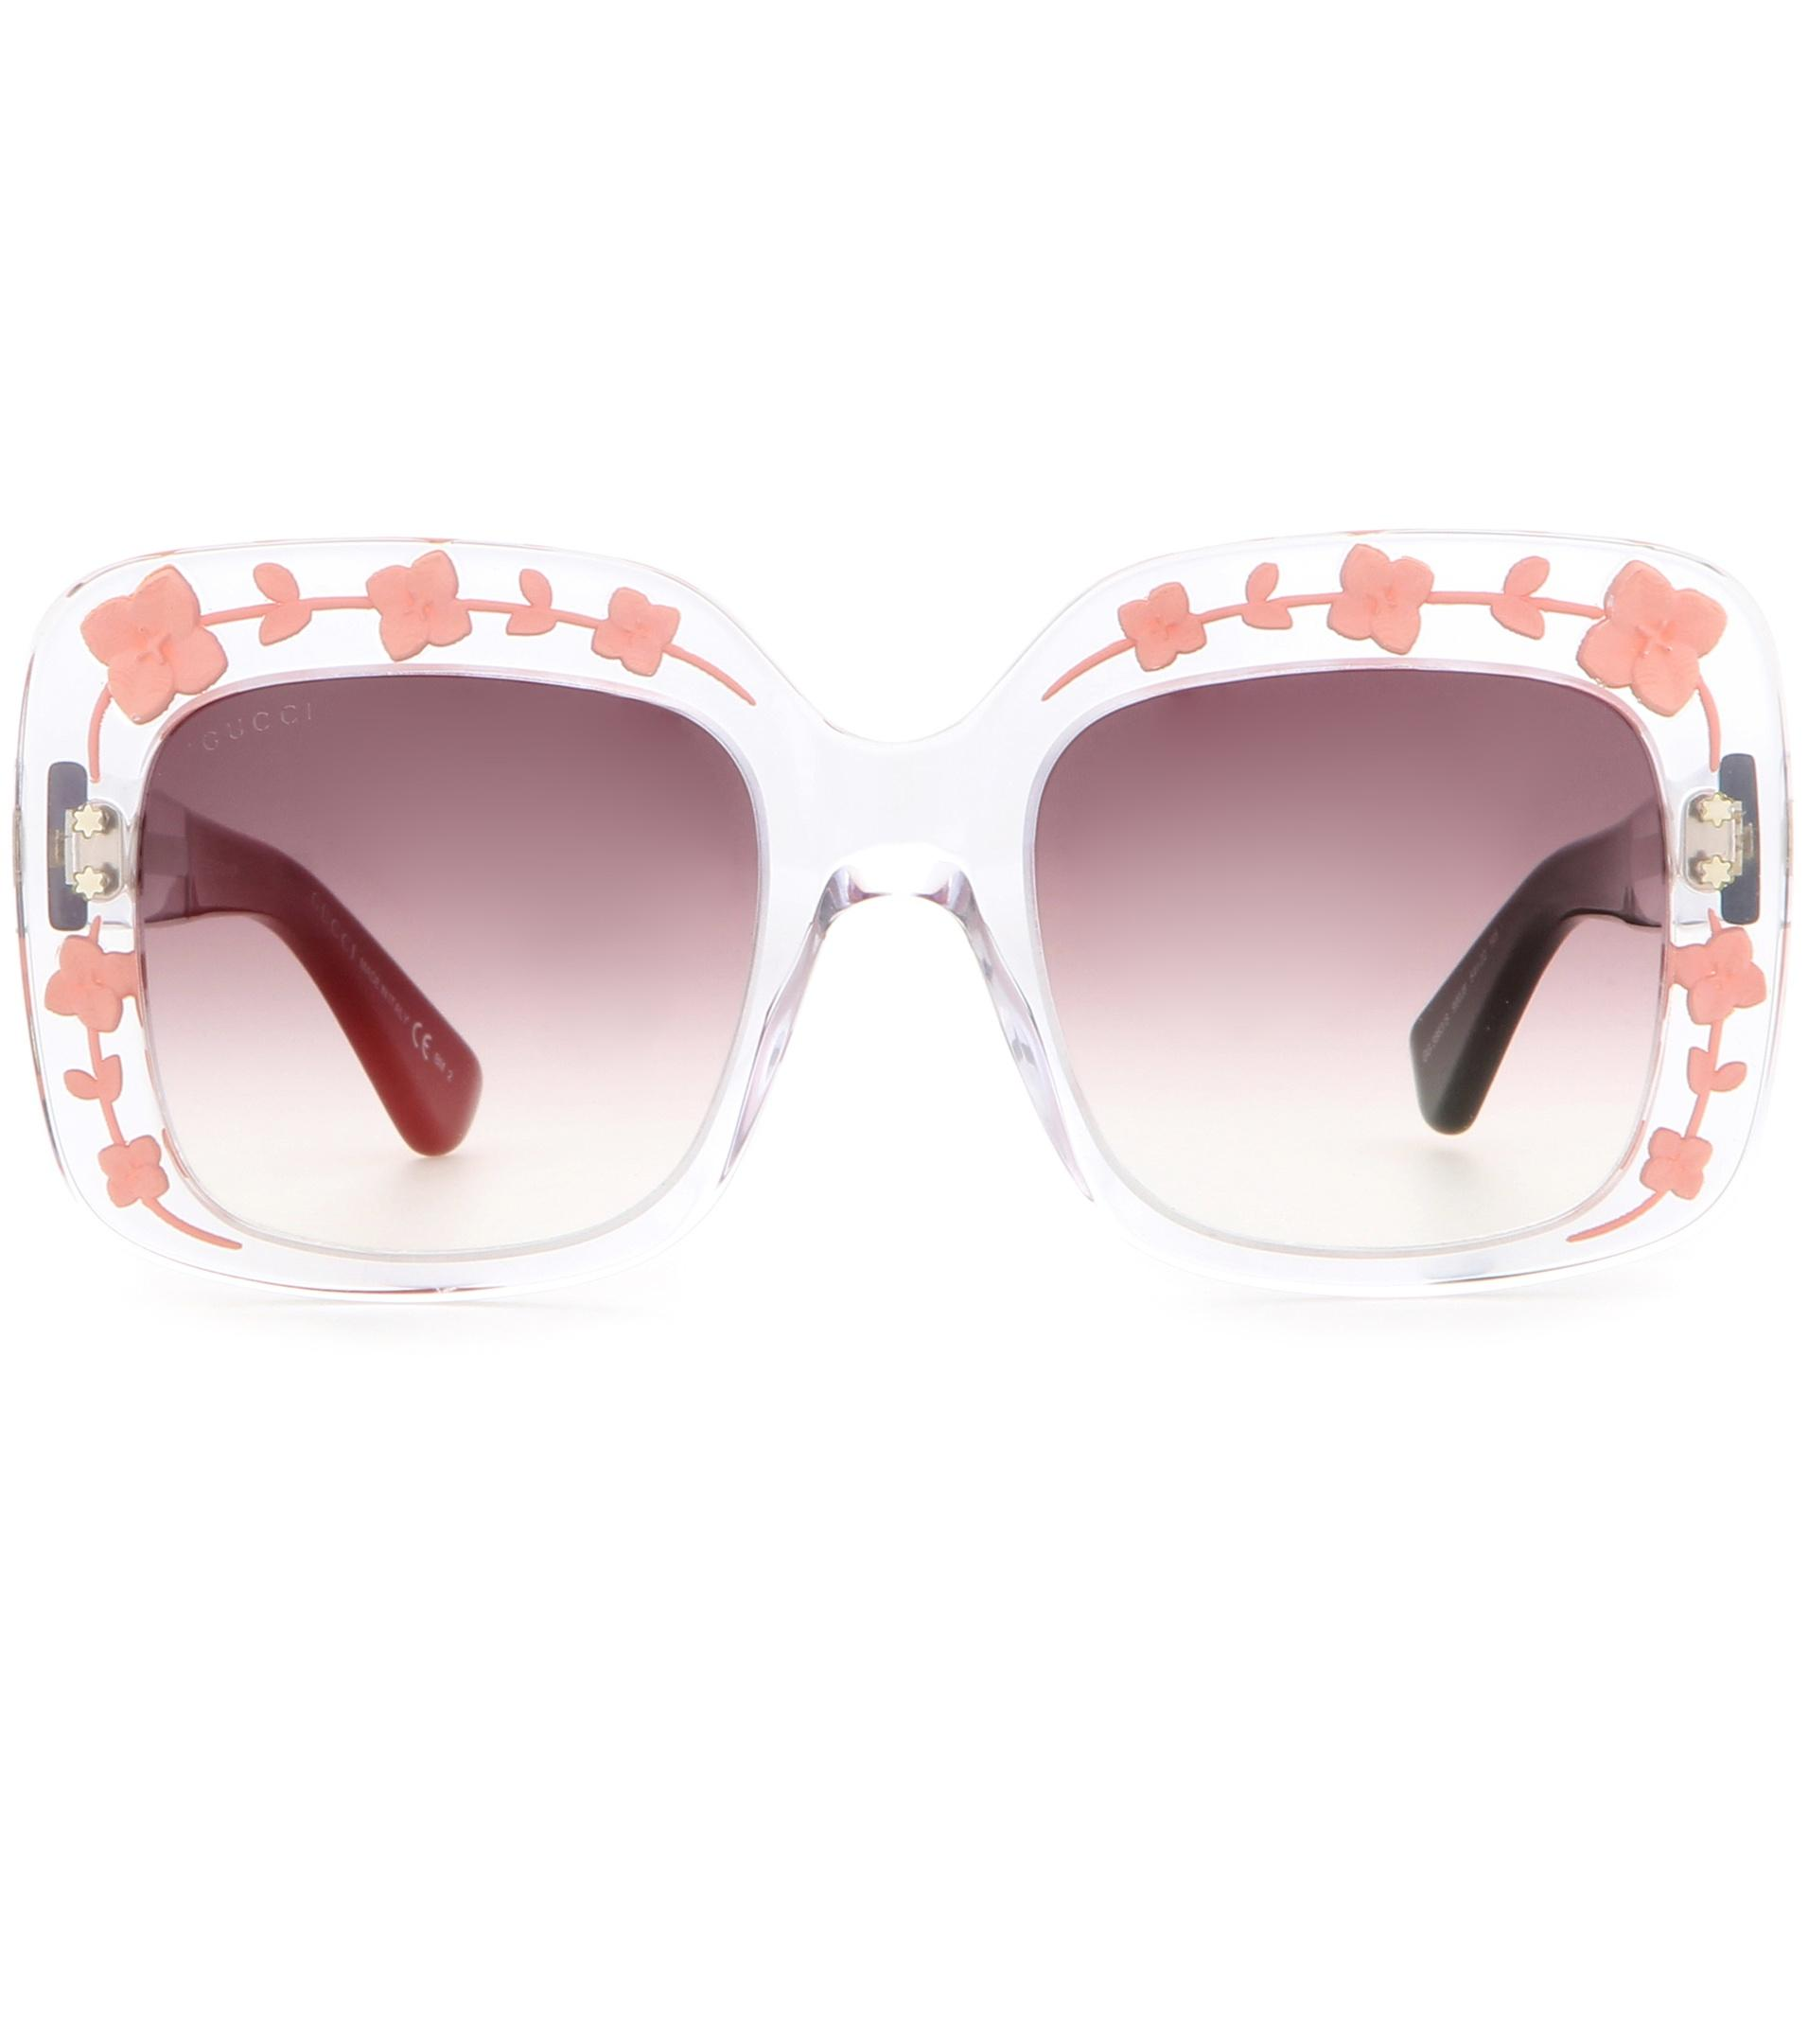 dd9ee0a2bde Gucci Oversized Square Sunglasses in Pink